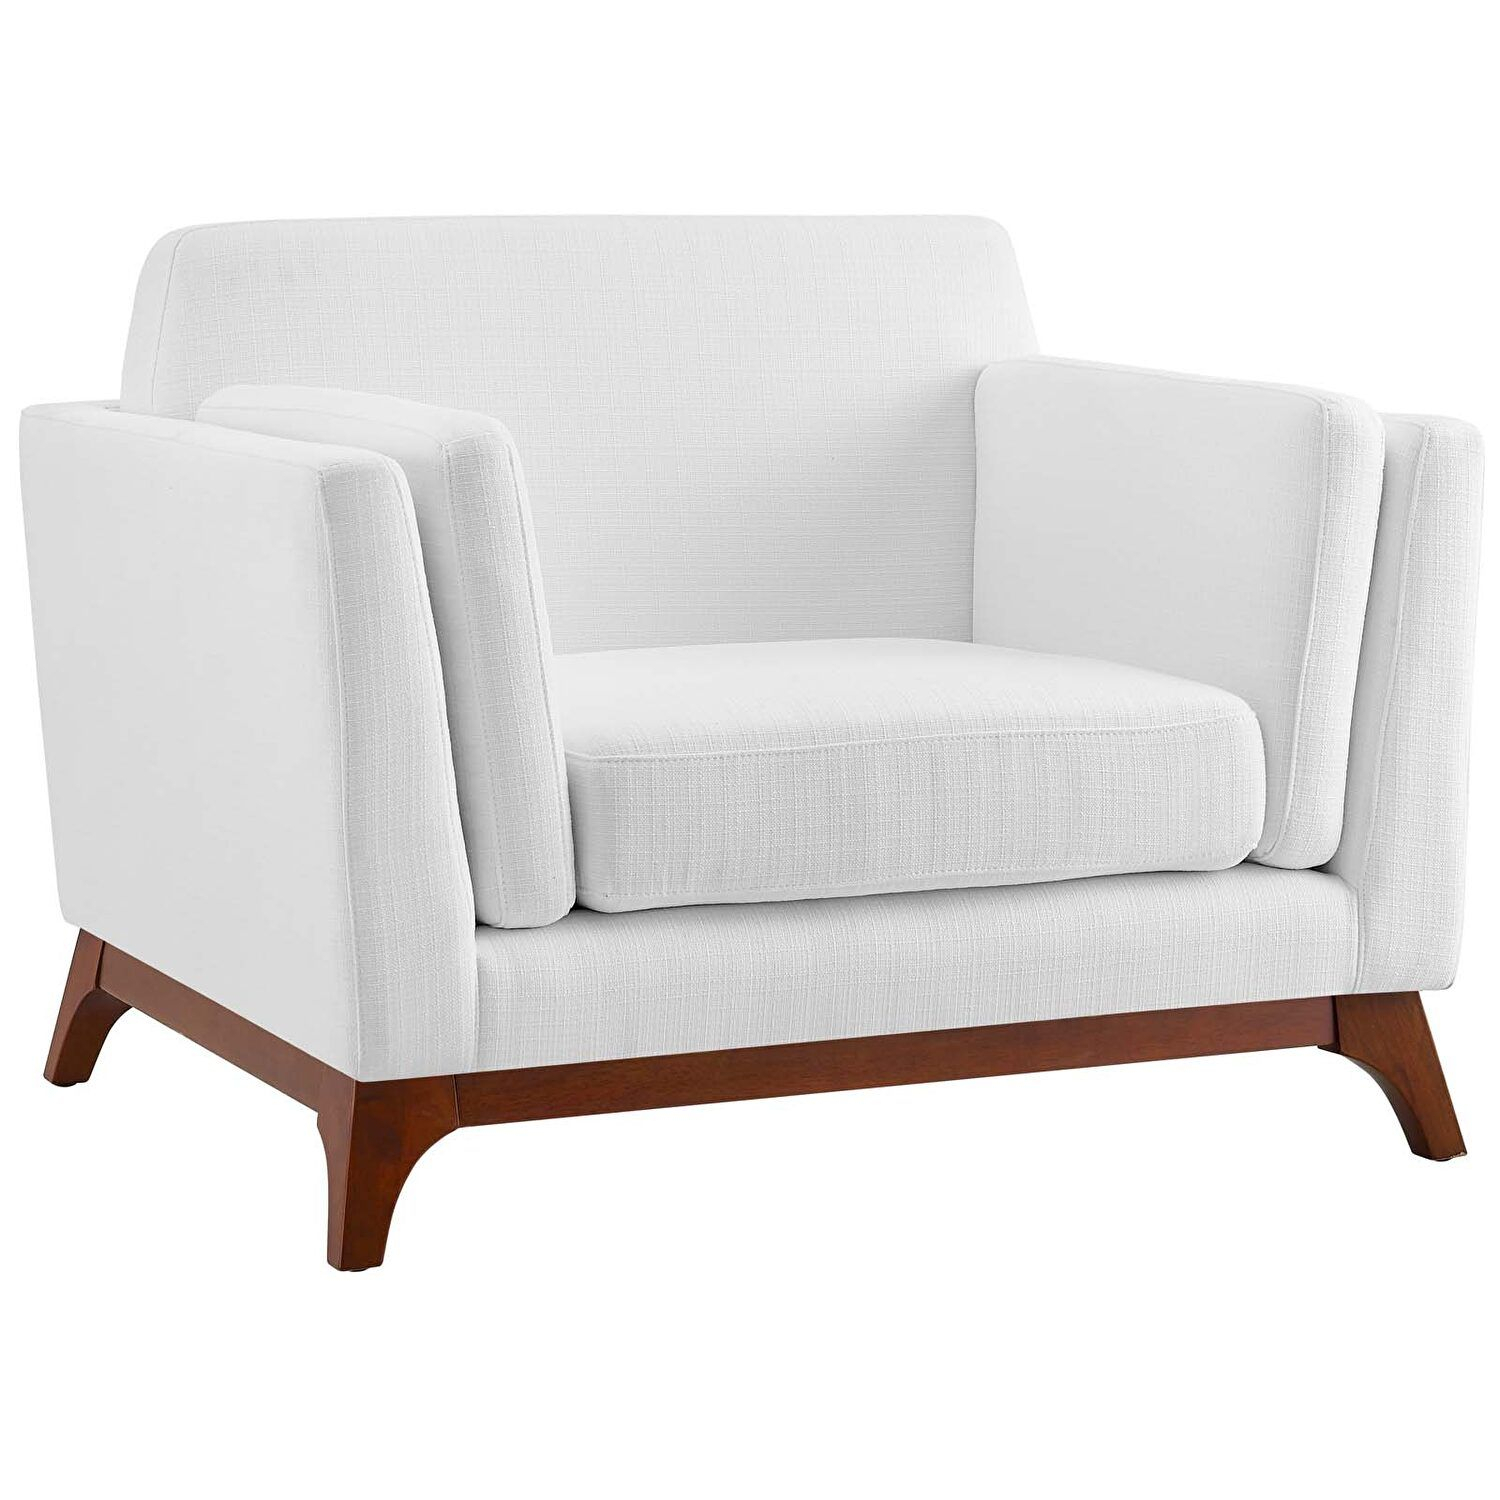 Chance White Chair Eei 3063 Whi Modway Furniture Chairs In For Belz Tufted Polyester Armchairs (View 14 of 15)